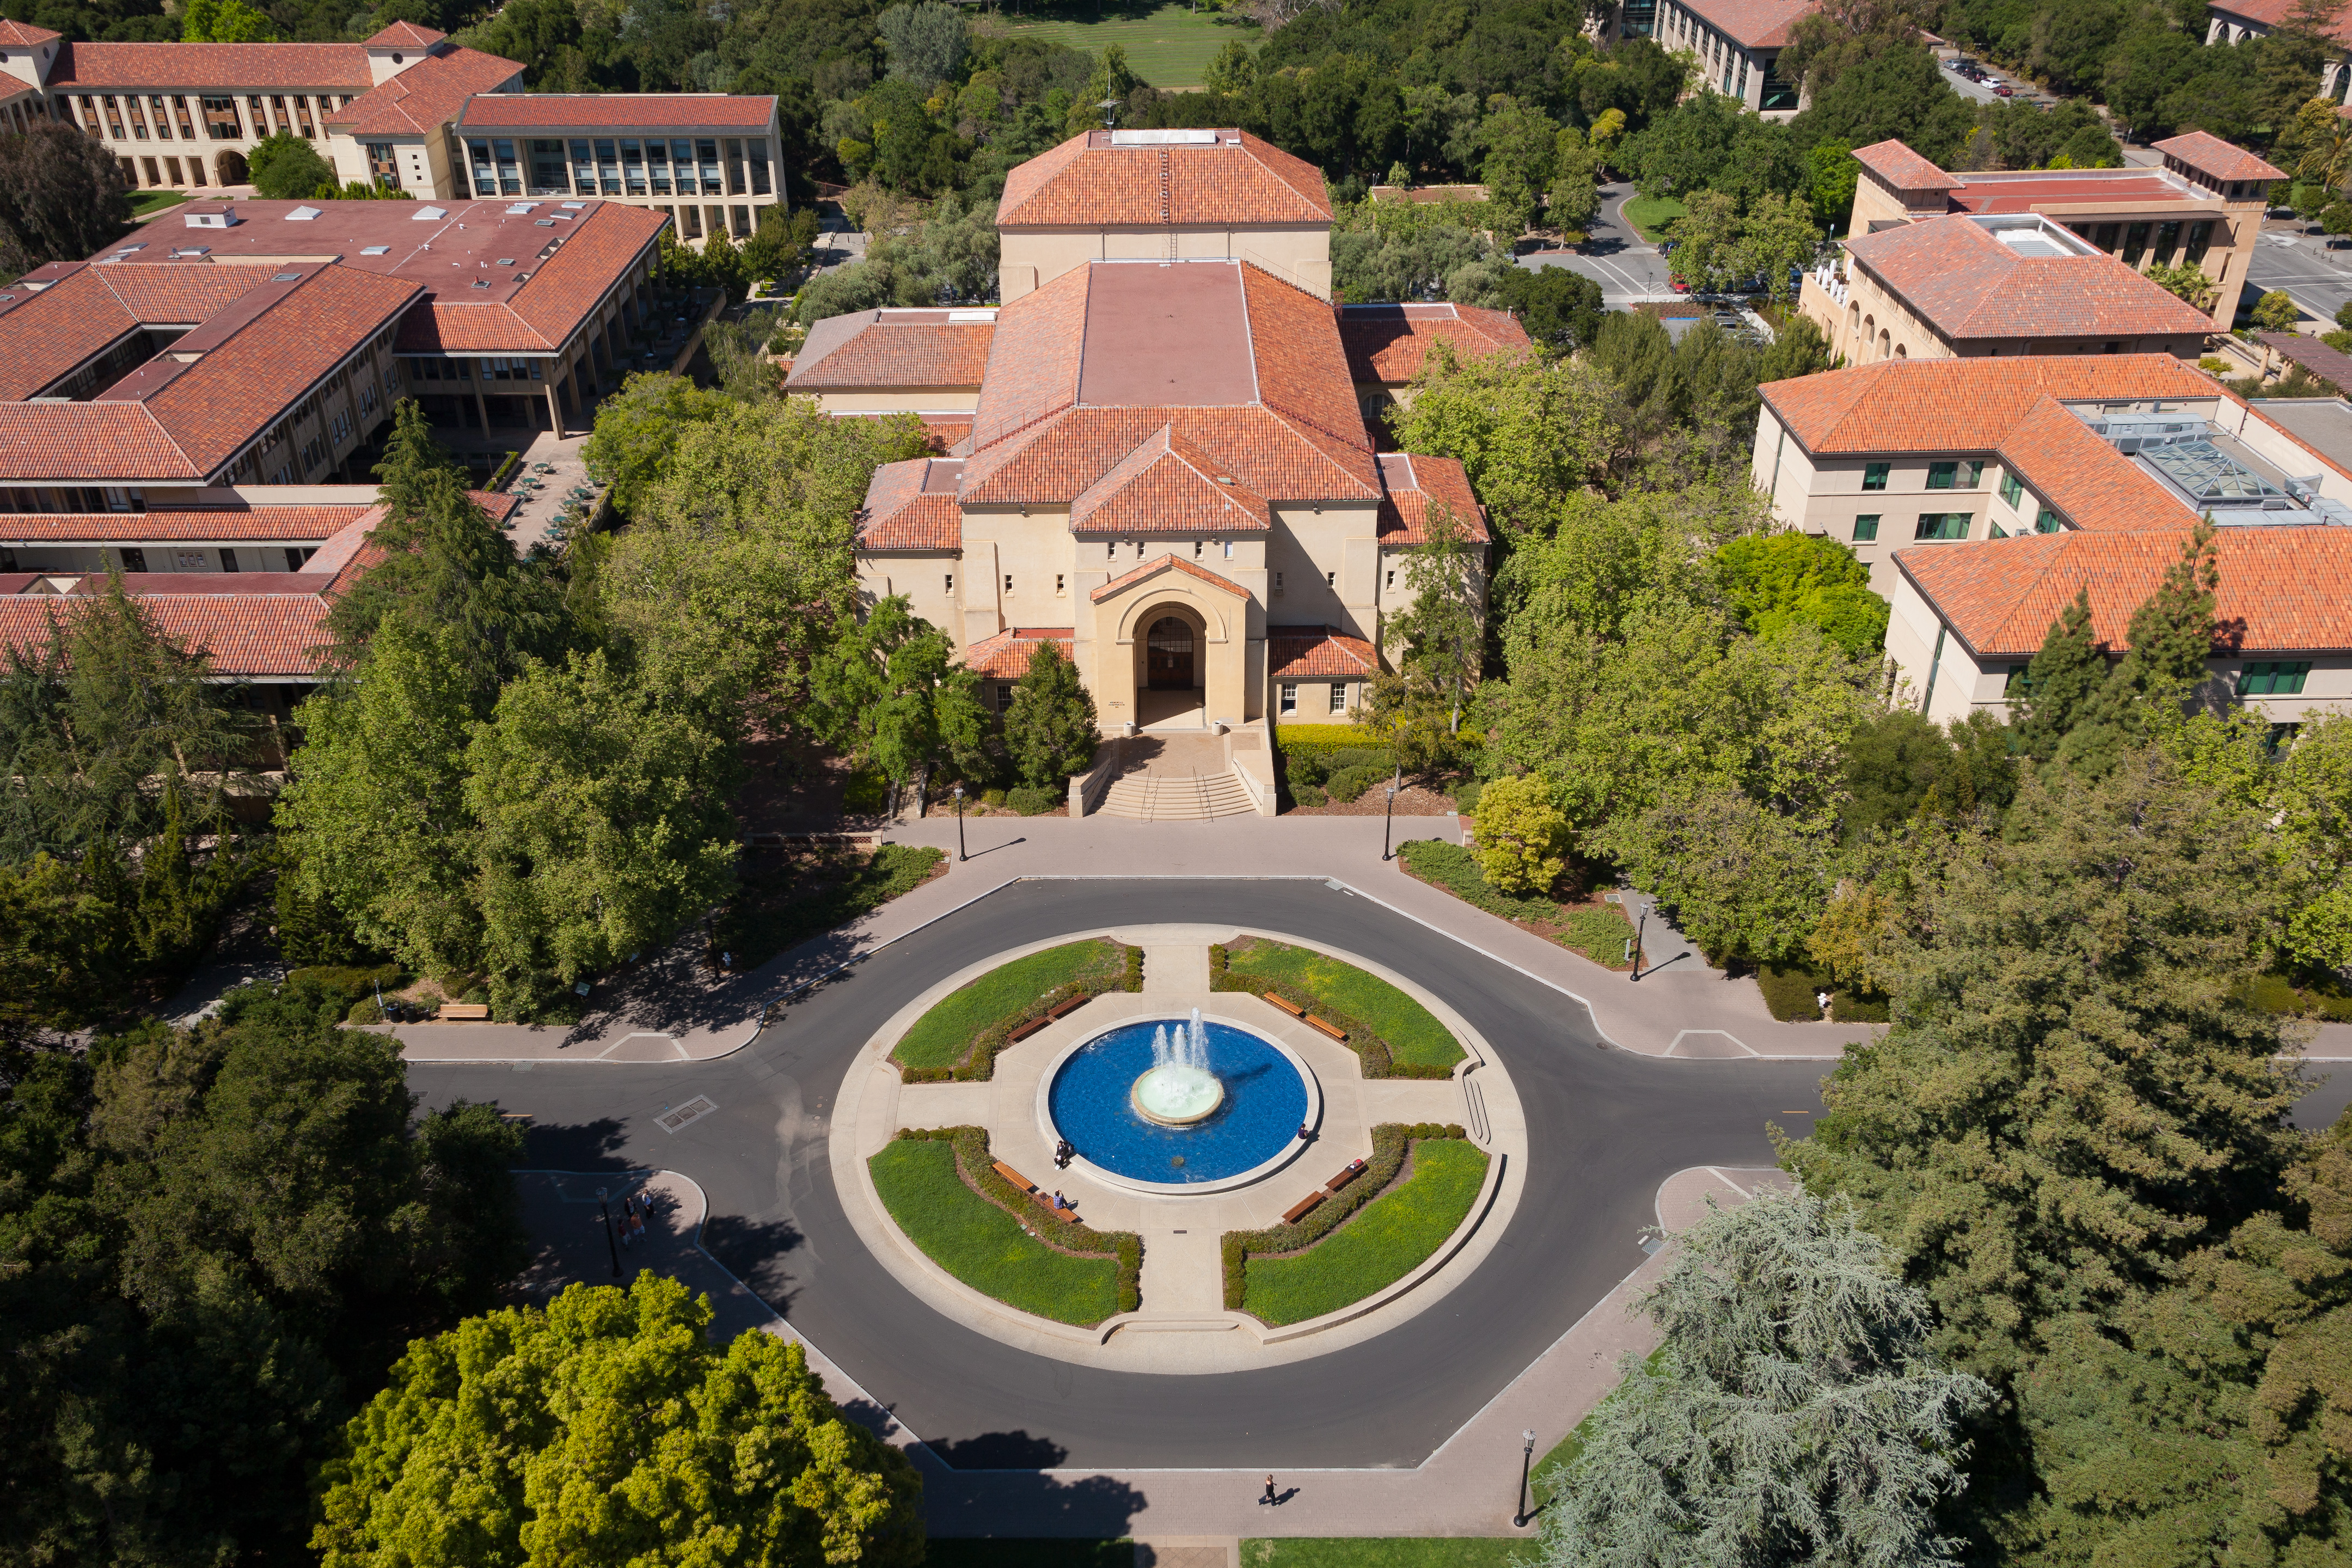 stanford university essays that worked Earlier this month, stanford university invited him to join its class of 2021 while this alone is a huge and rare honor, what generated headlines was the essay on ahmed's application.